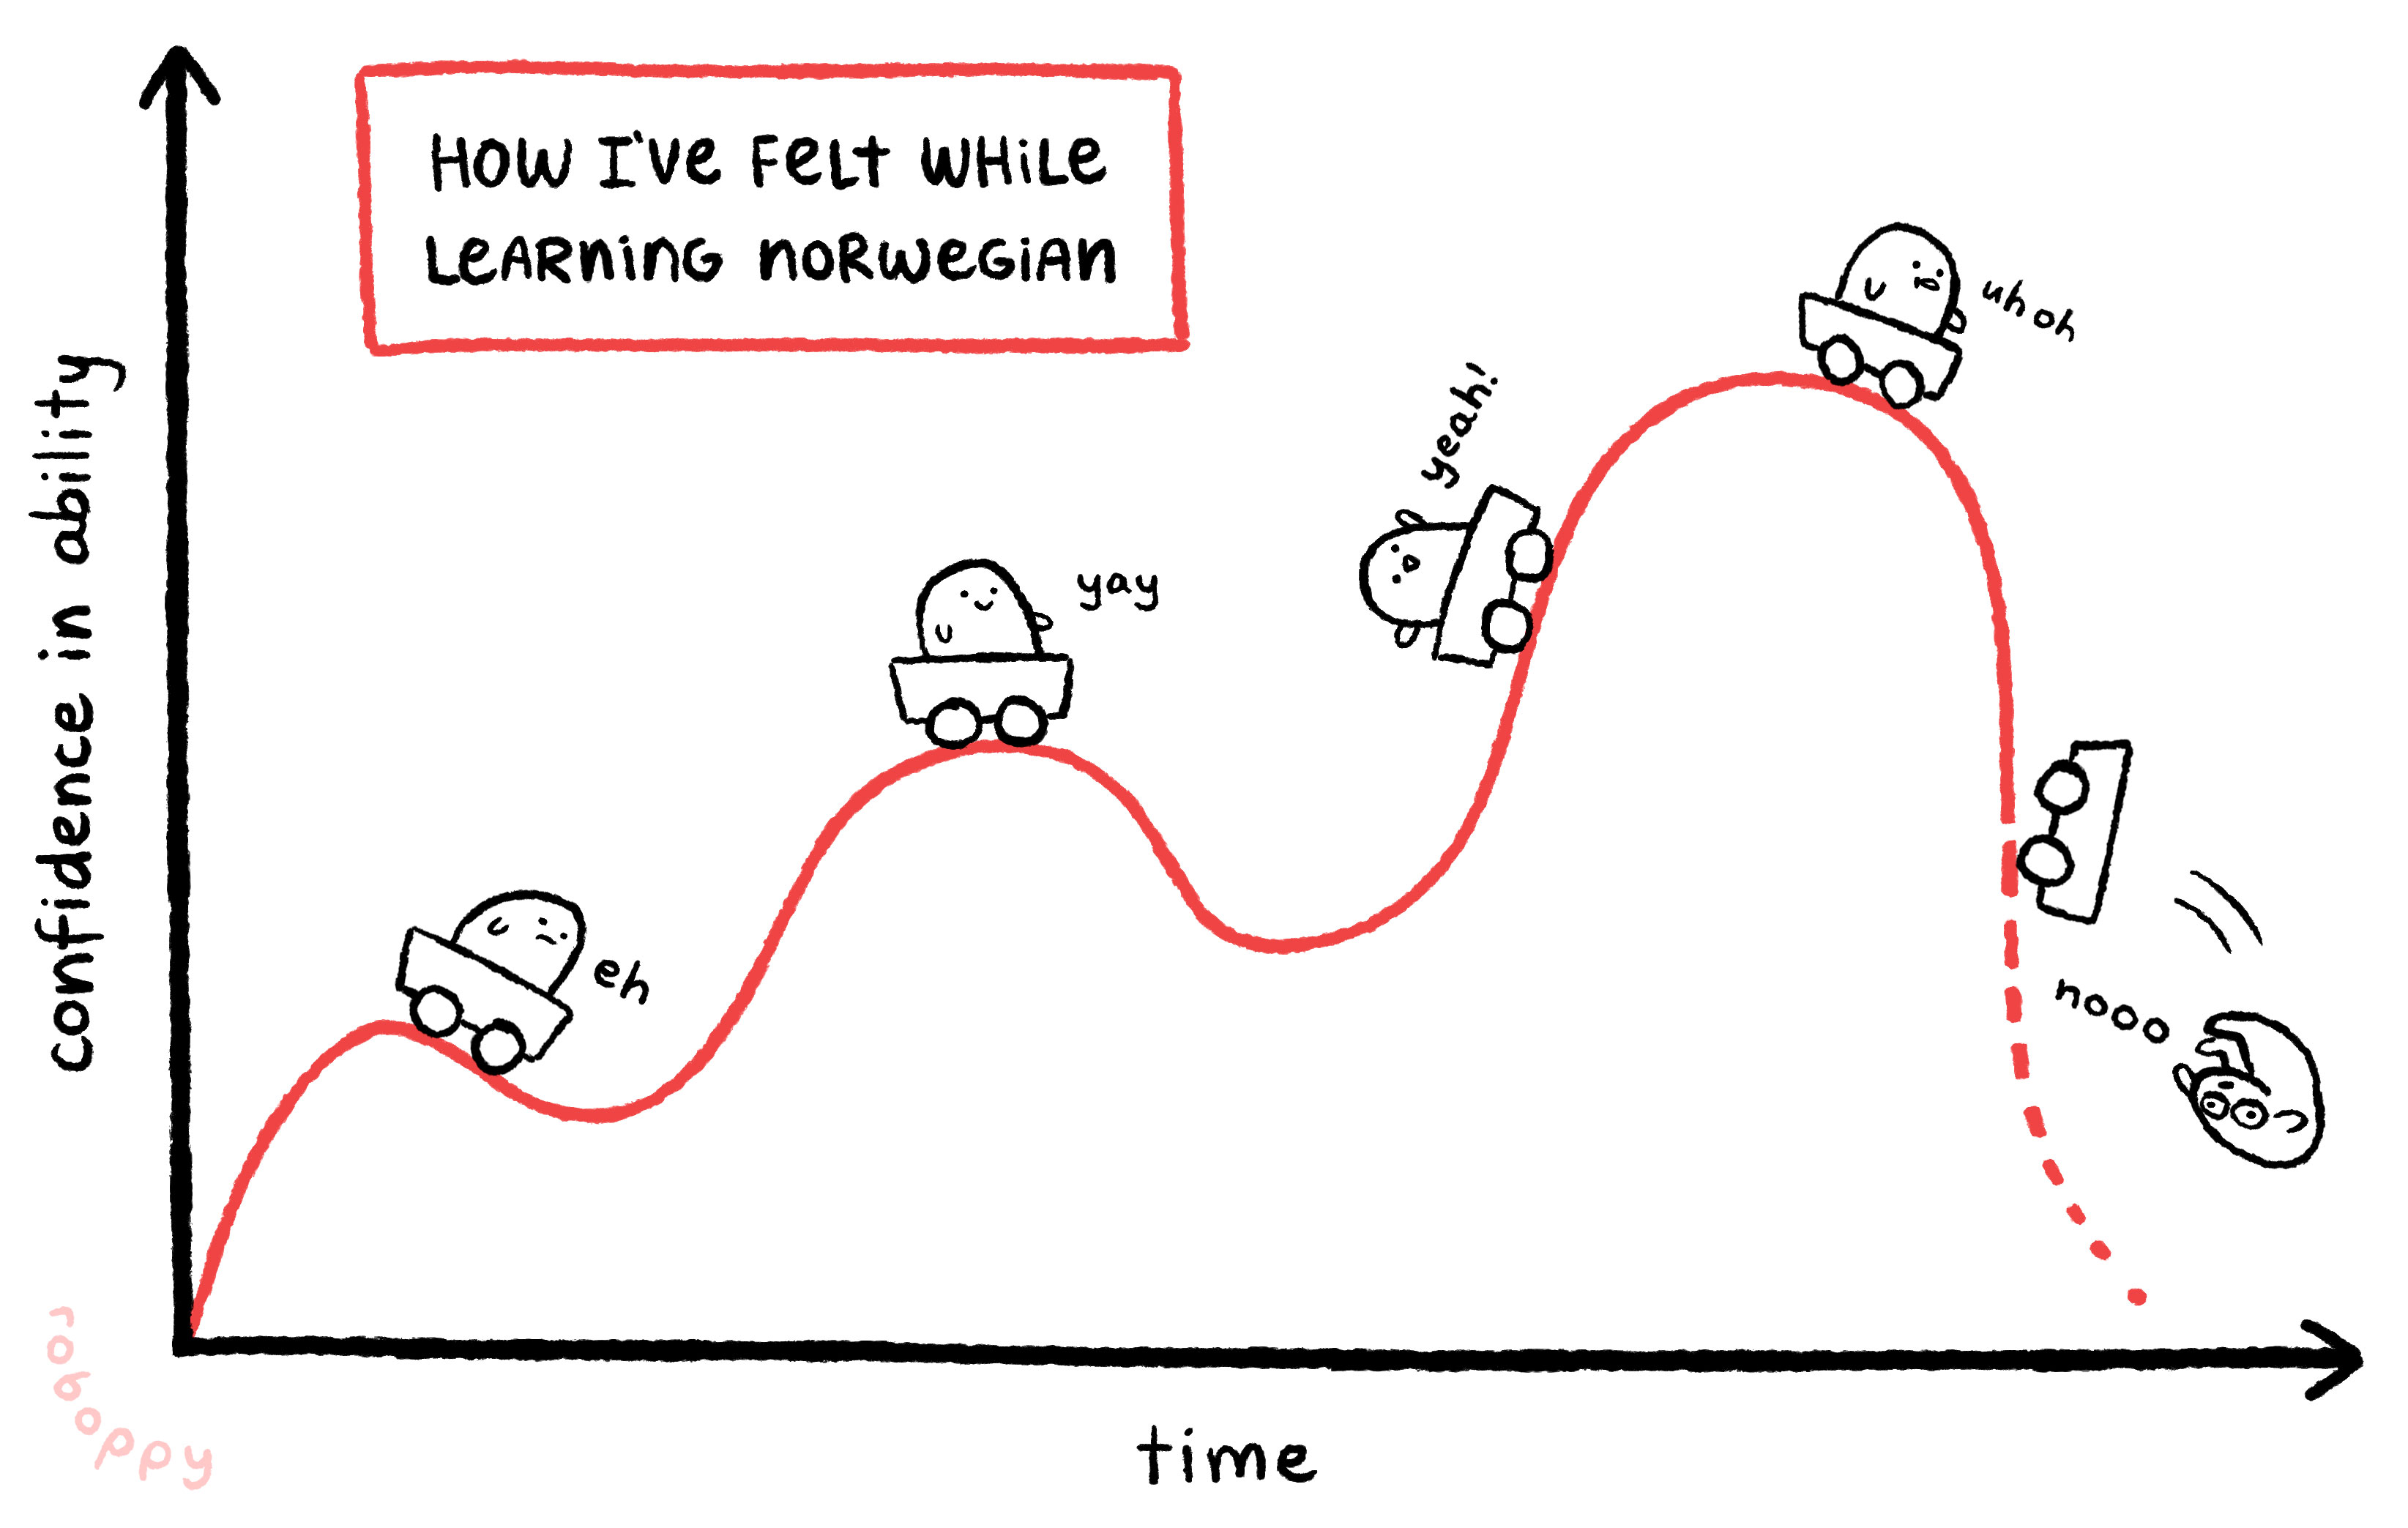 20181204-learning-norwegian-graph.jpg